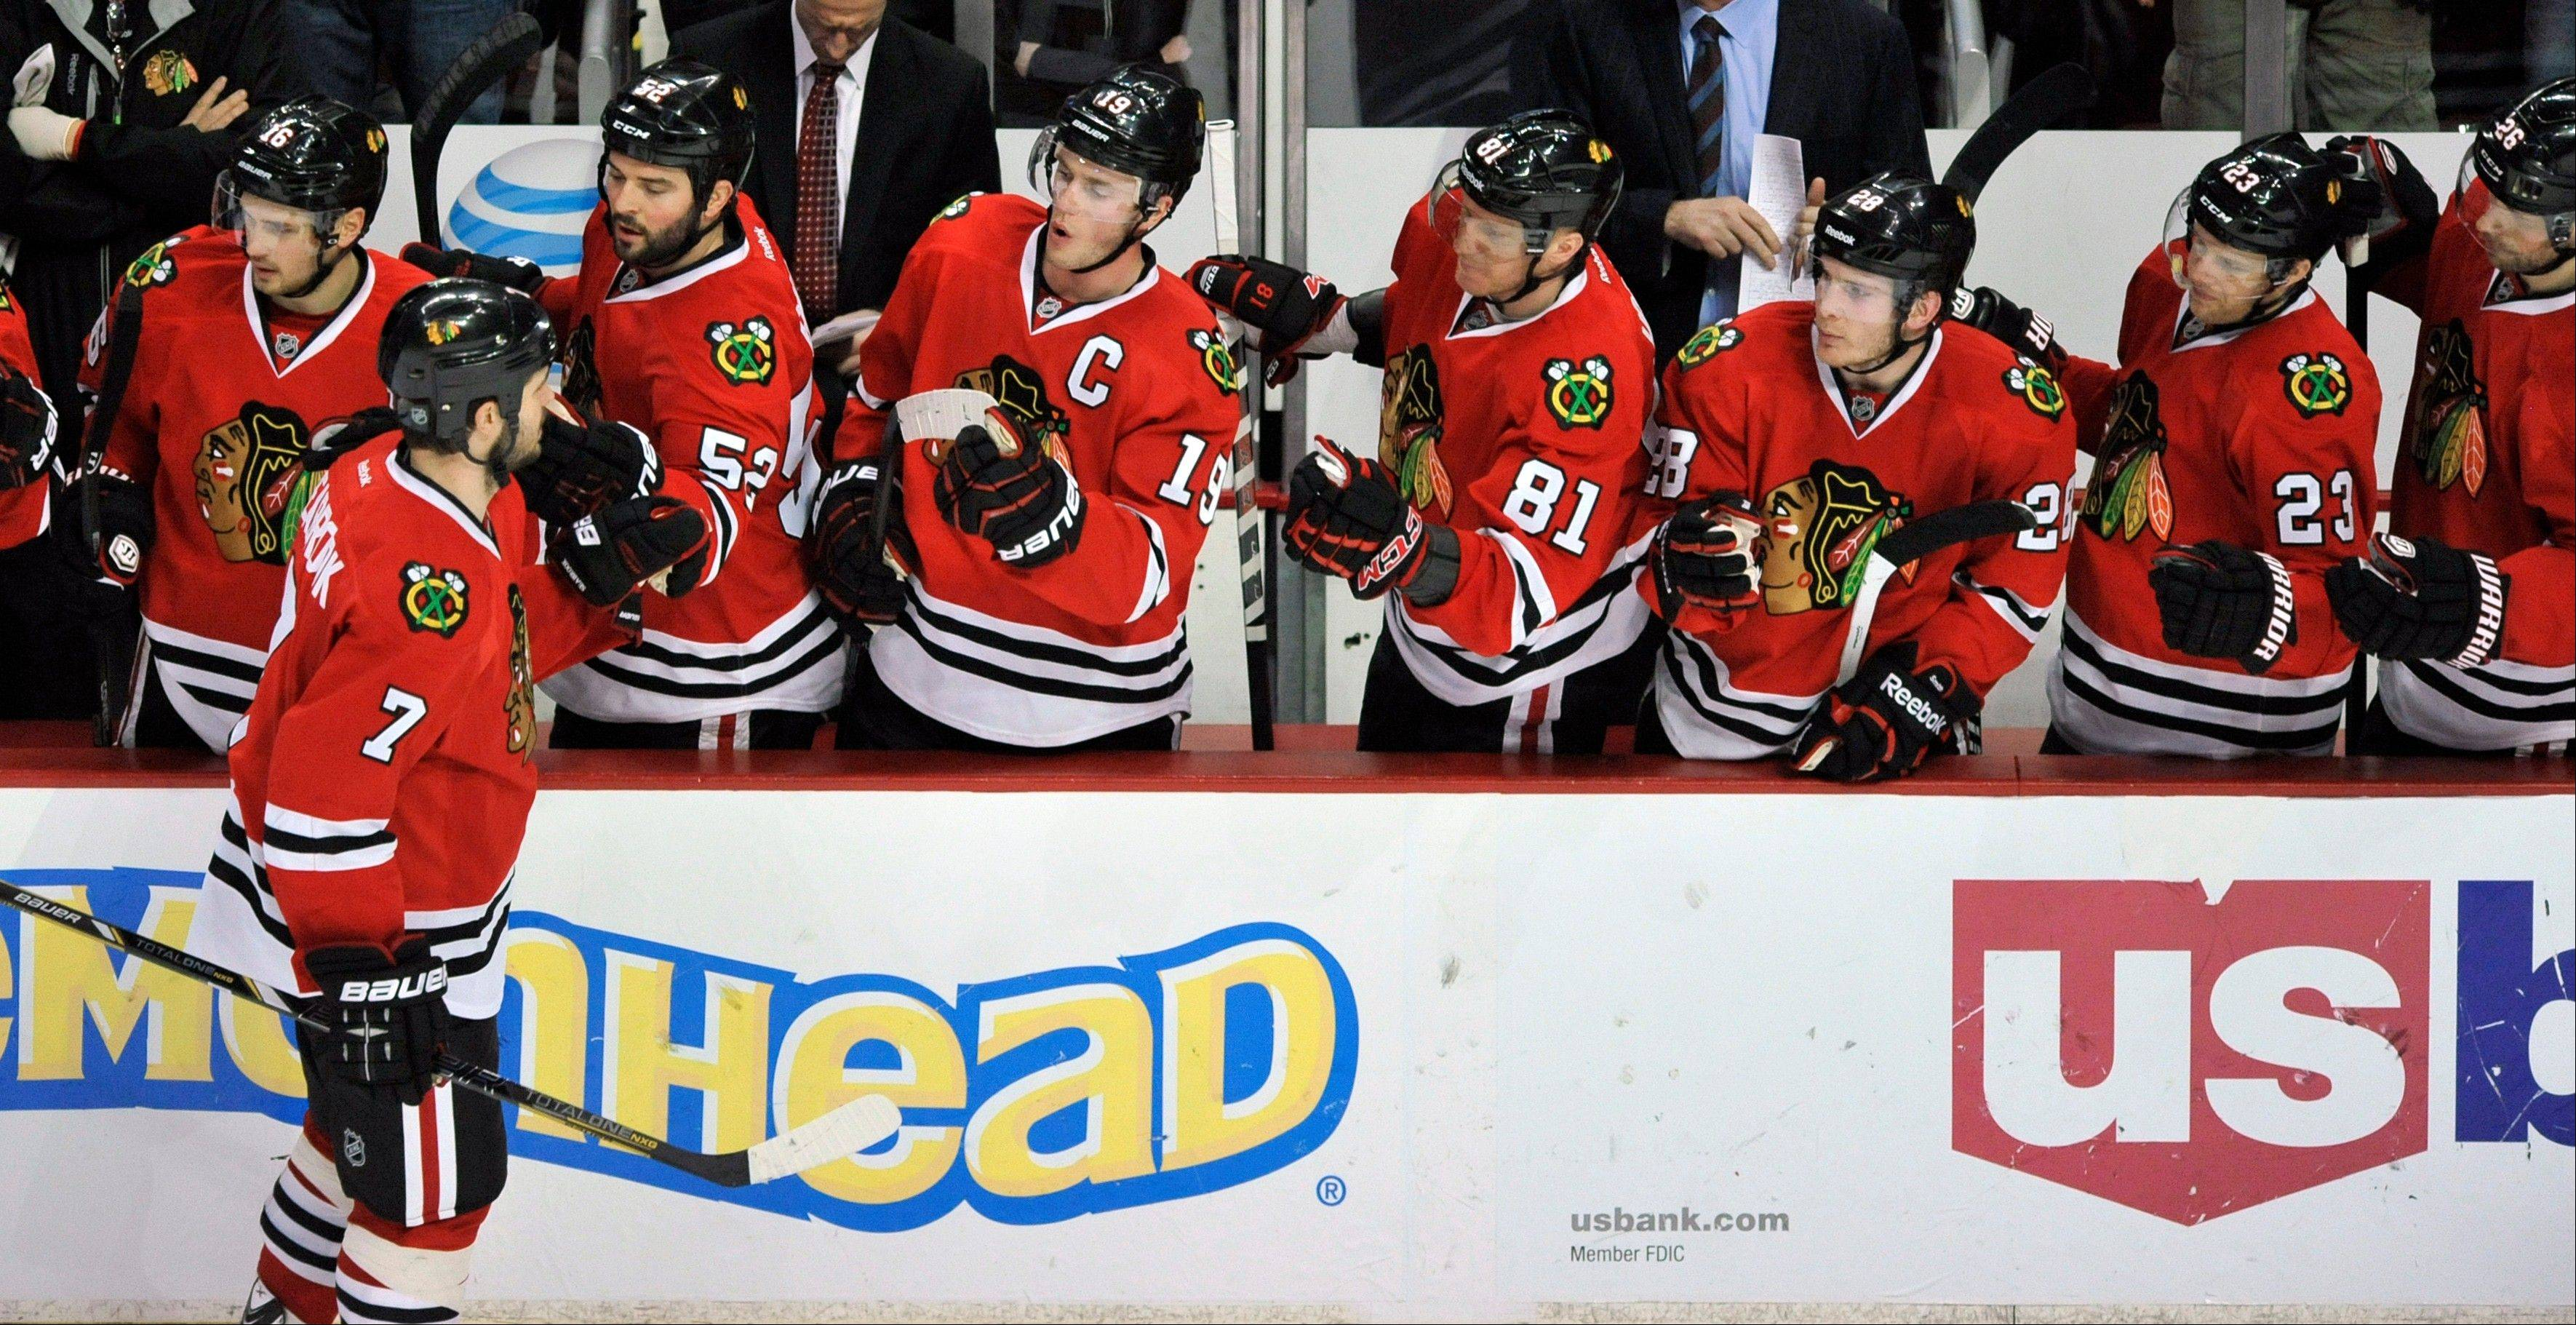 Brent Seabrook (7), celebrates with teammates after scoring a goal during the third period of an NHL hockey game against the Edmonton Oilers in Chicago, Sunday, Jan. 12, 2014. Chicago won 5-3.